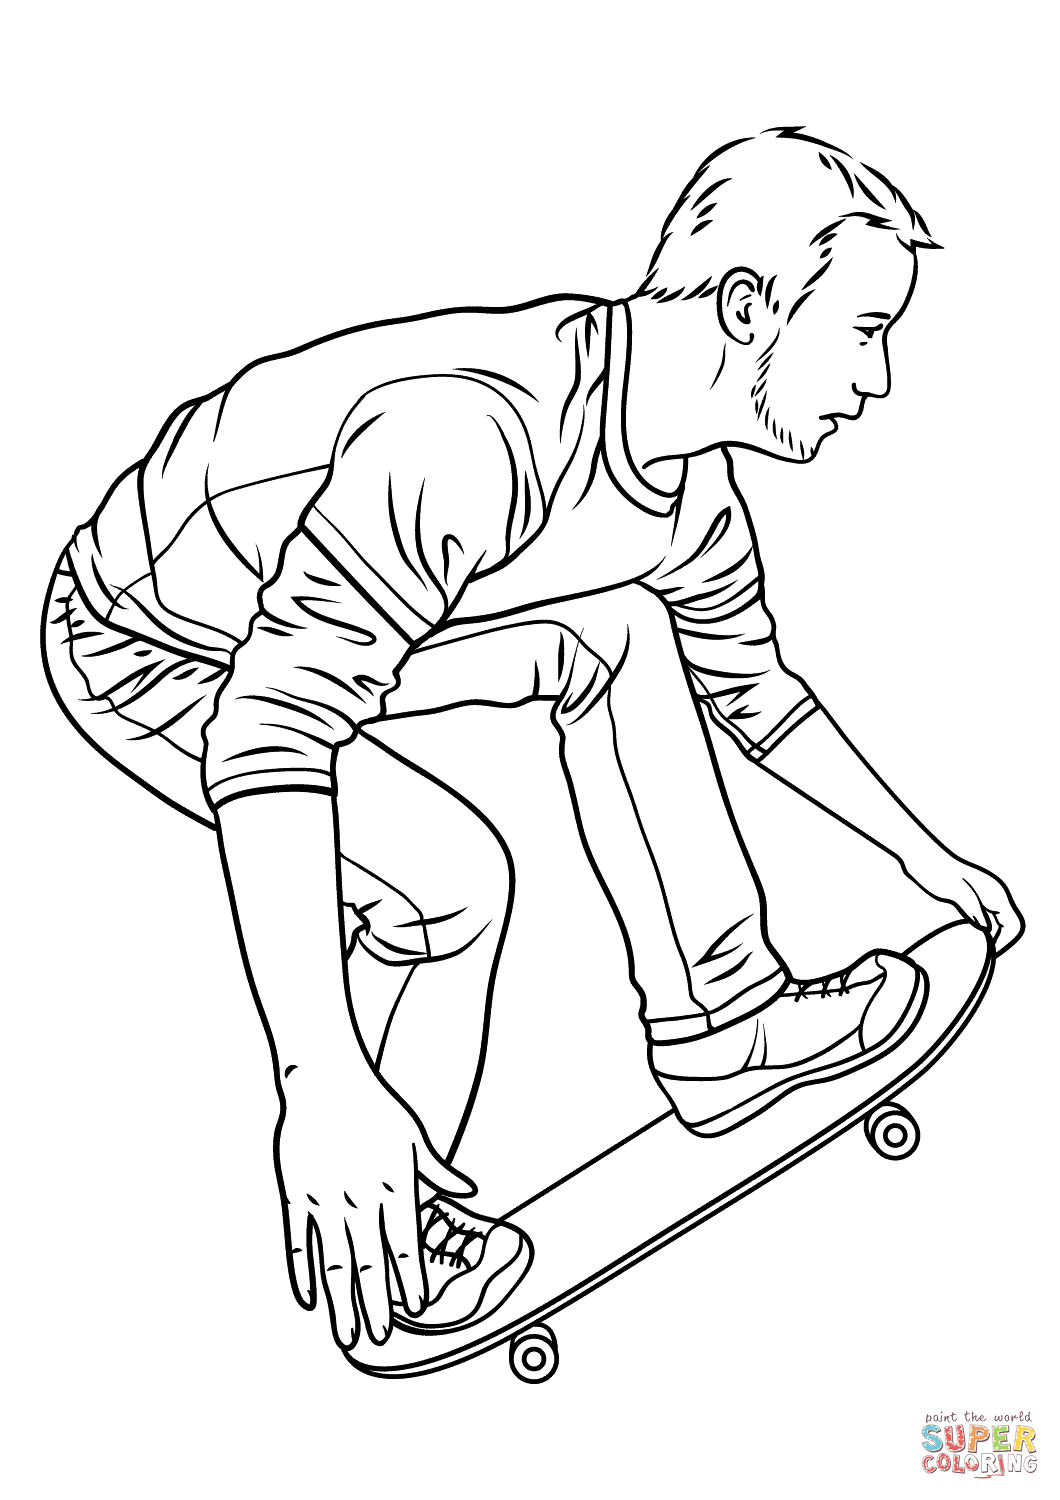 27+ Marvelous Image of Skateboard Coloring Page